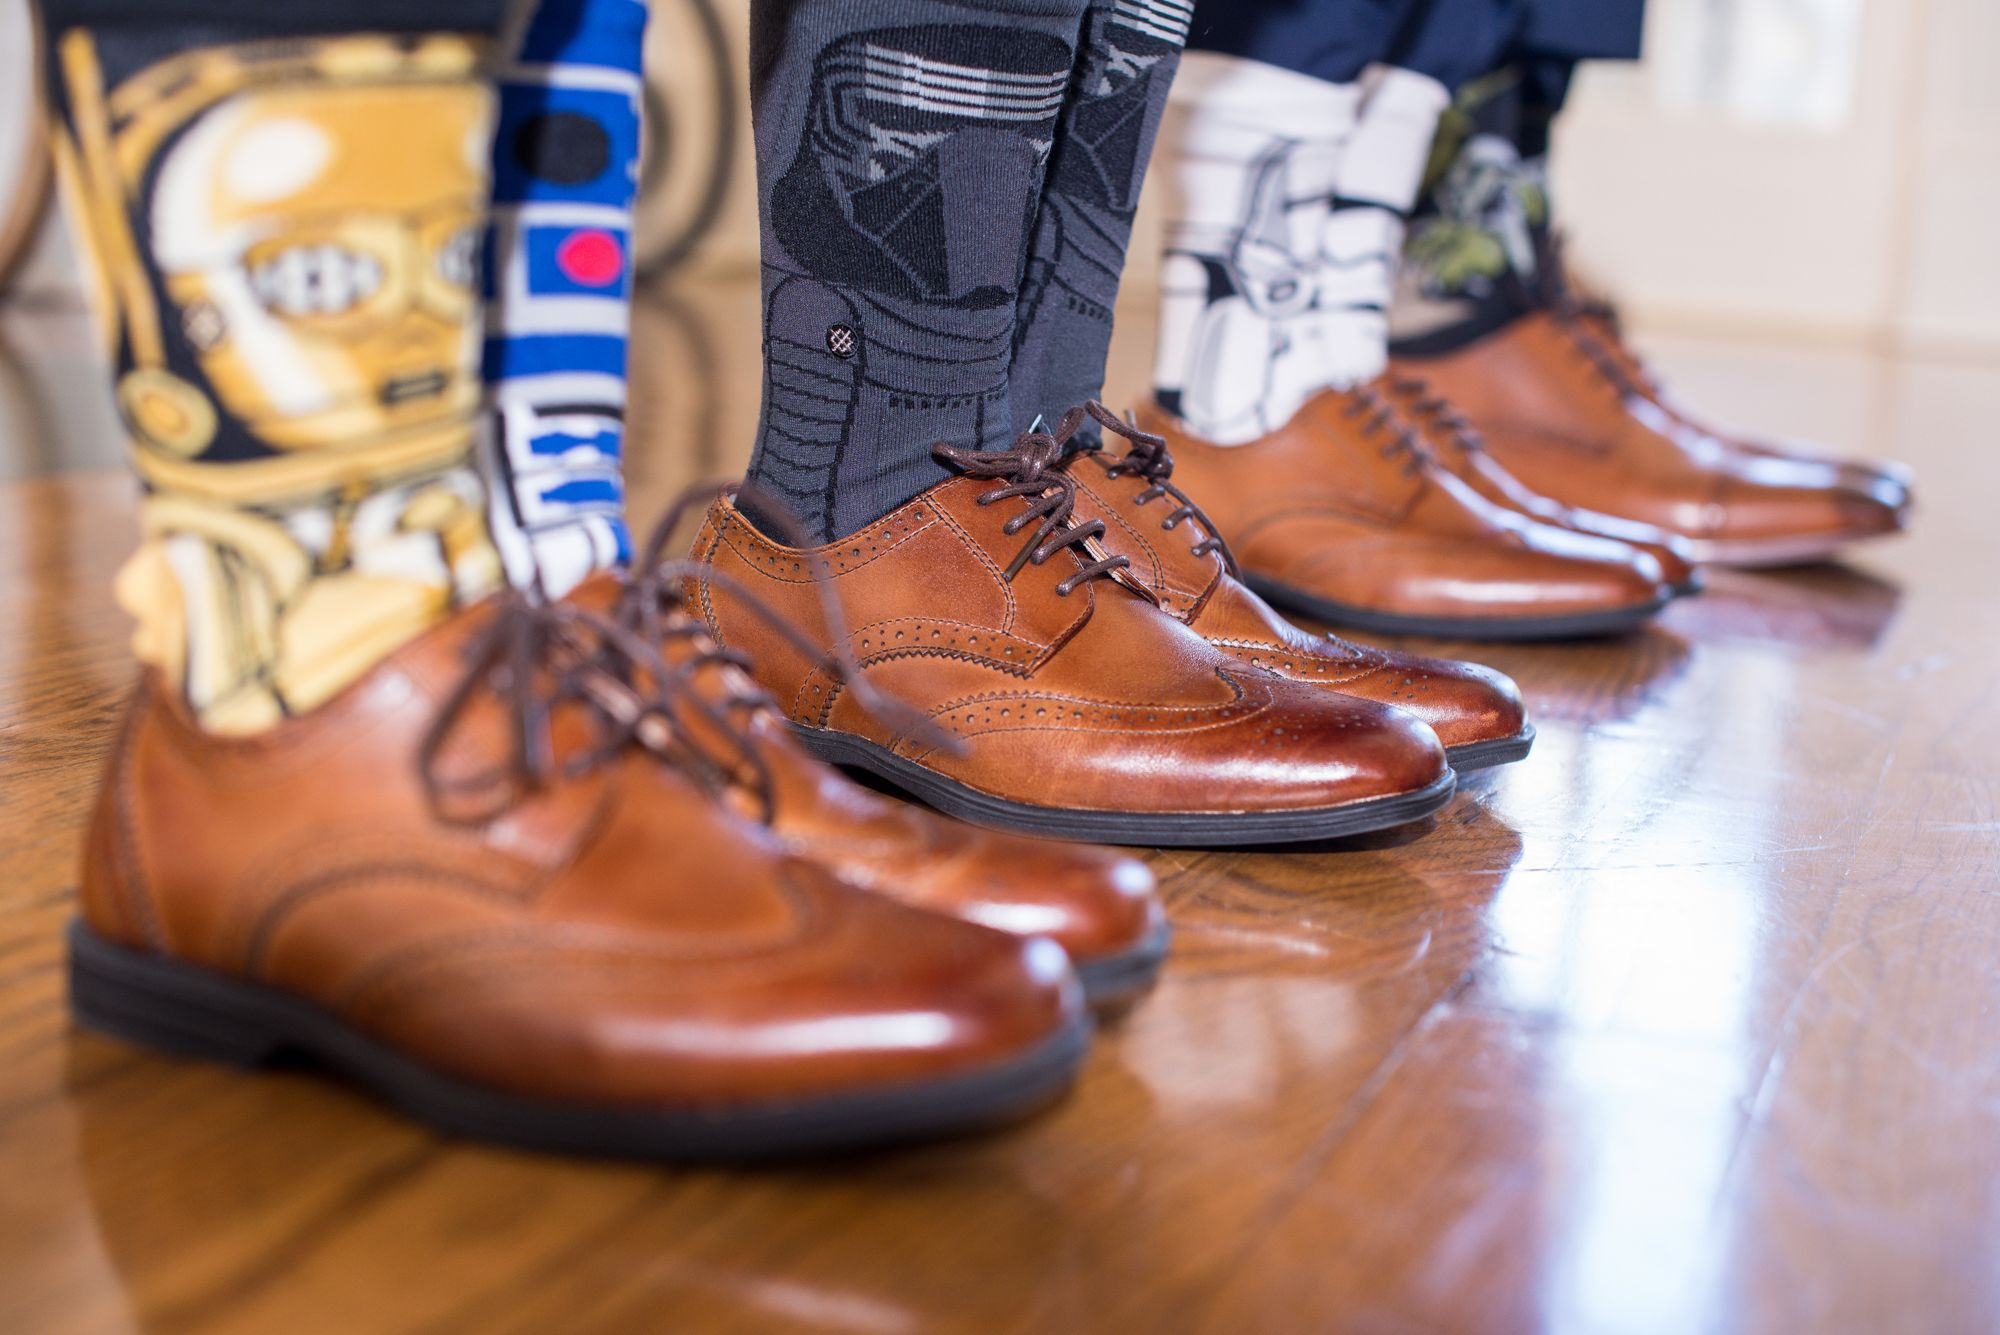 The Force is strong with these Star Wars inspired groomsmen socks ...